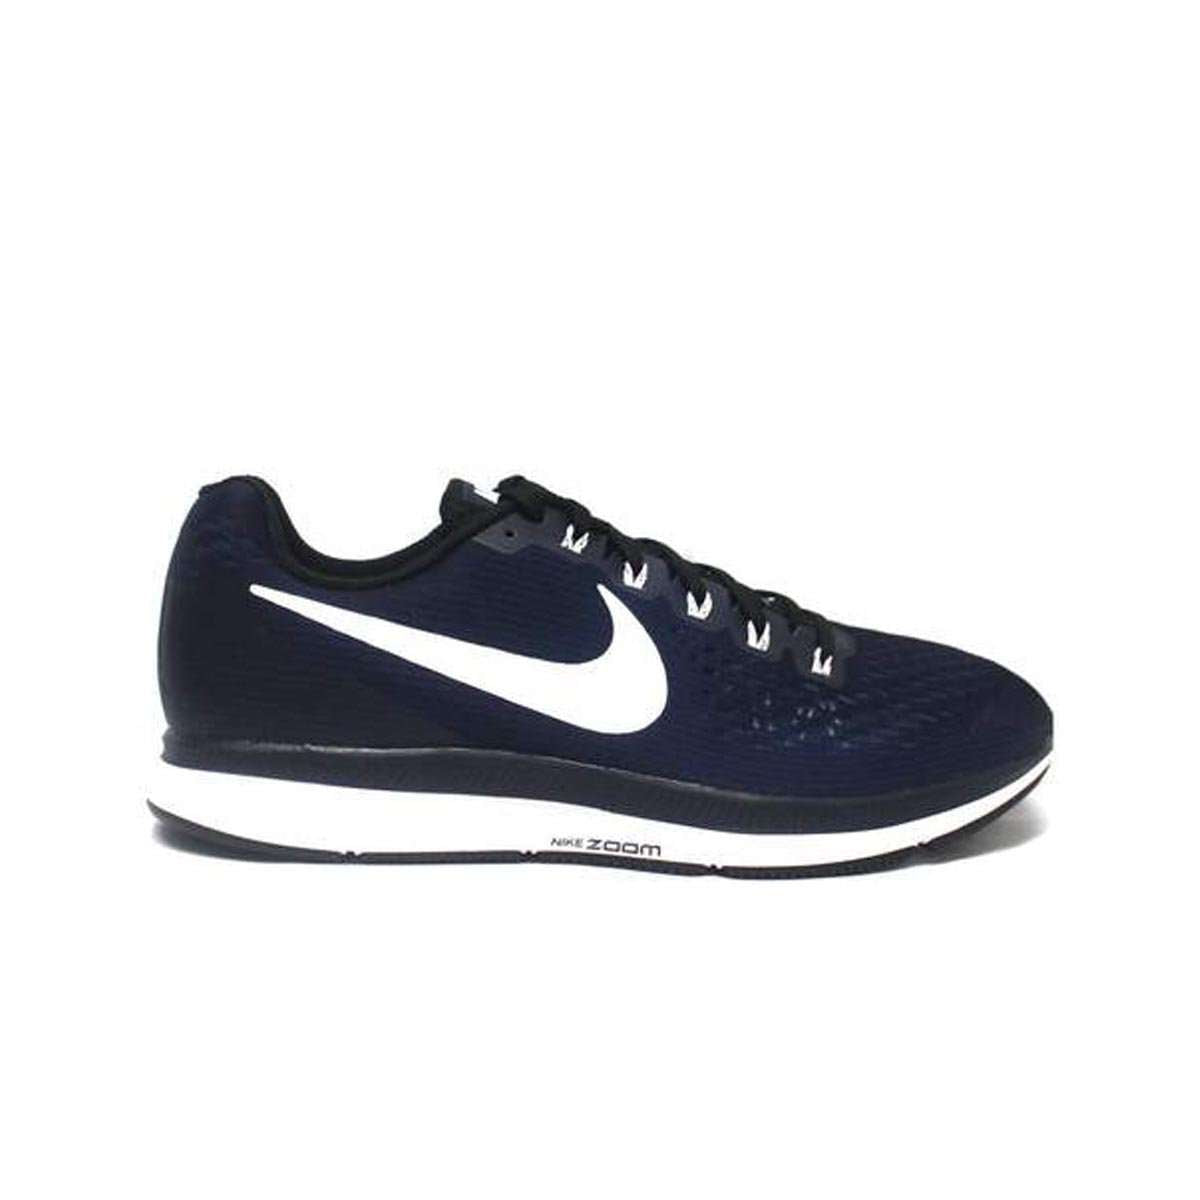 c20b47f3d3092 Nike Air Zoom Pegasus 34 TB Men's Running Shoes - League Outfitters ...